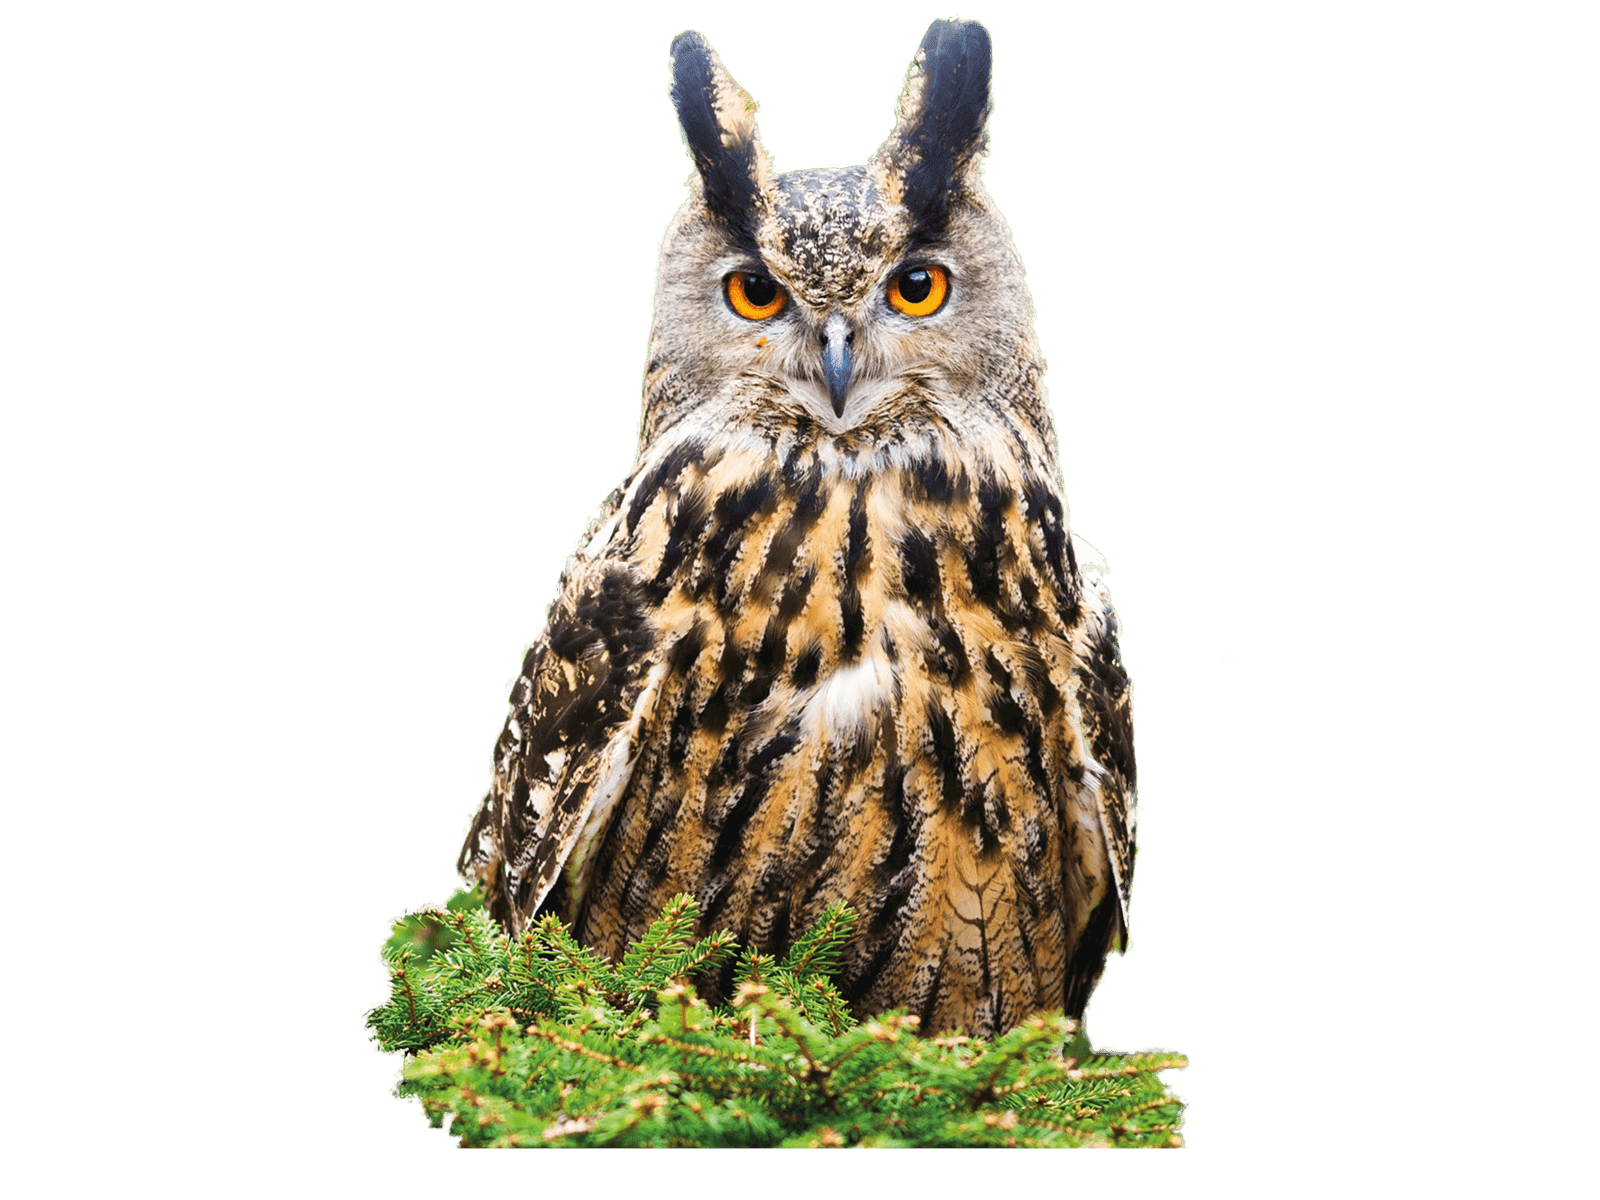 Owl in branches image